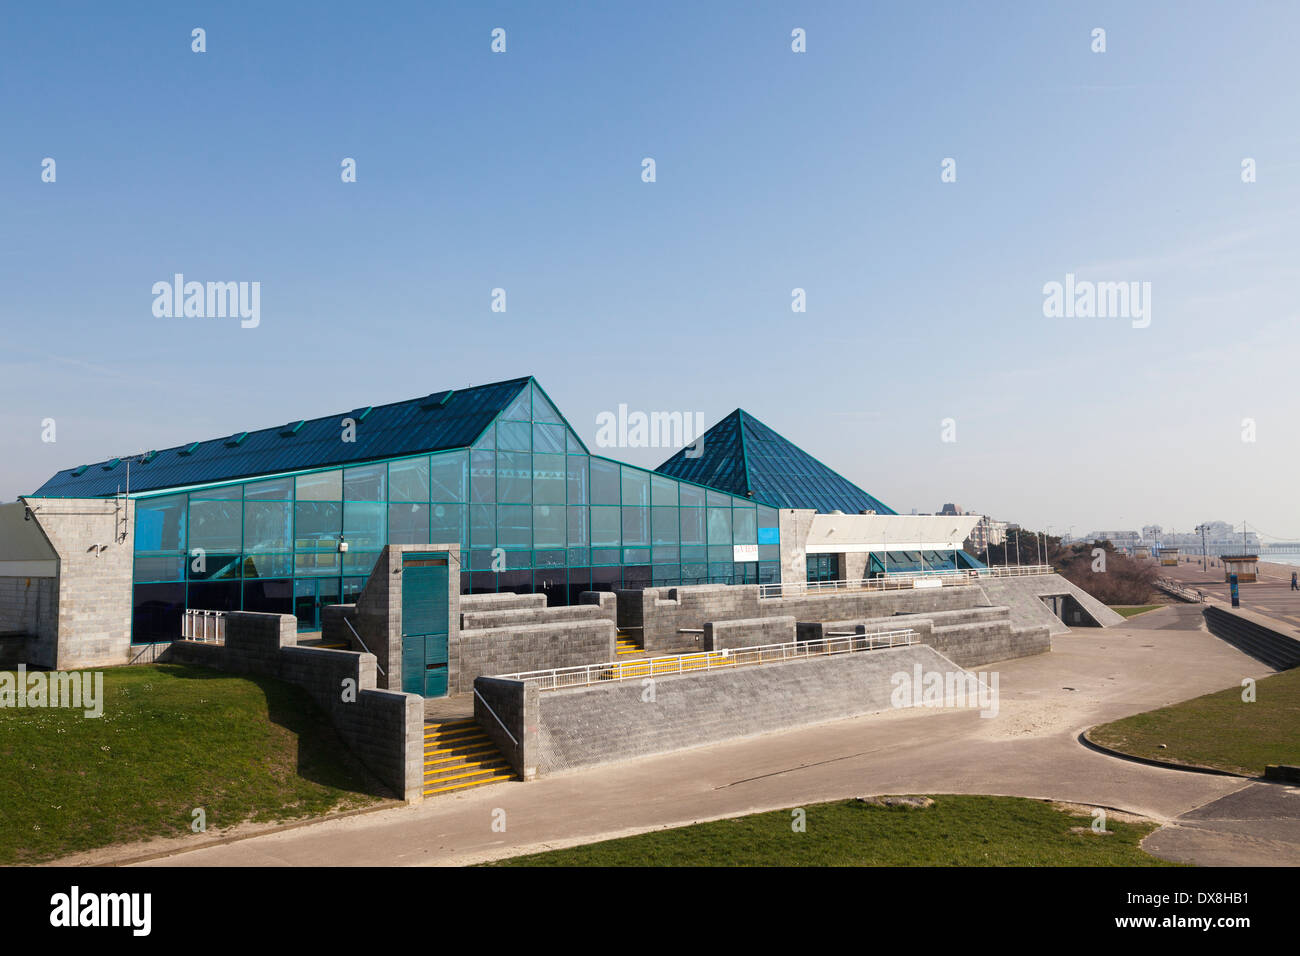 Exterior on The Pyramids Centre, Southsea. - Stock Image